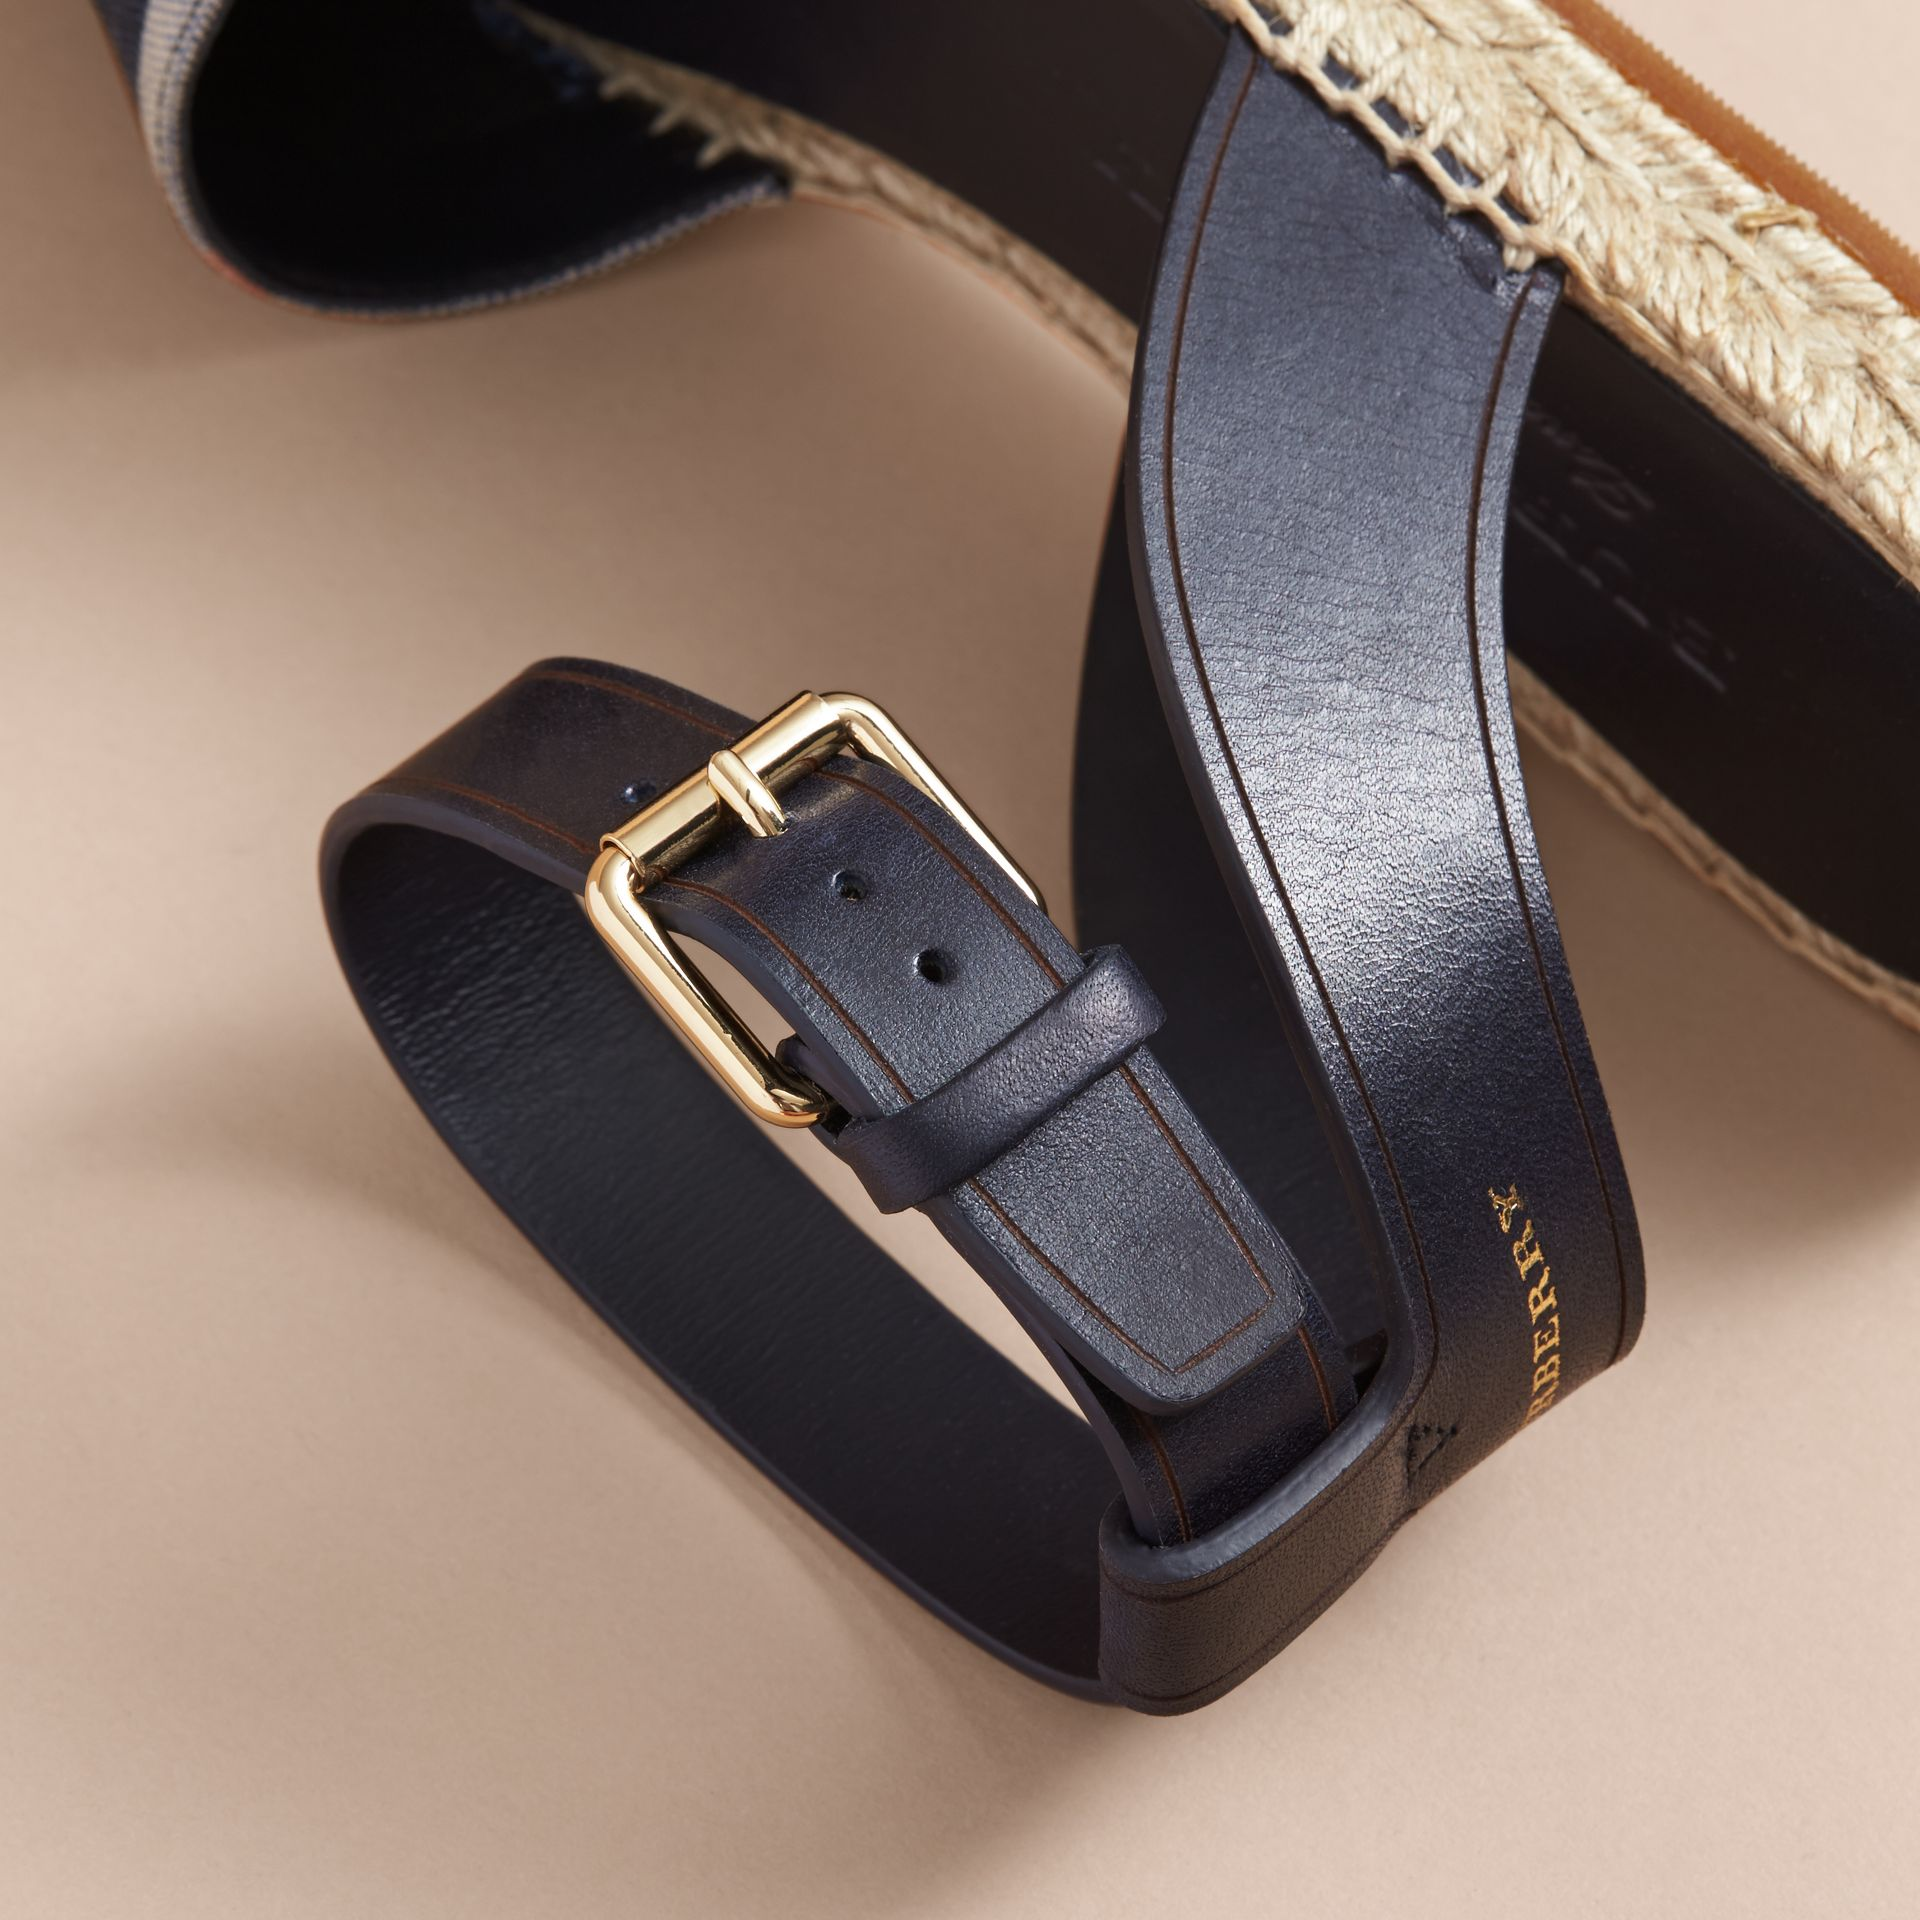 Leather and Check Linen Cotton Espadrille Sandals in Navy - Women | Burberry United Kingdom - gallery image 1